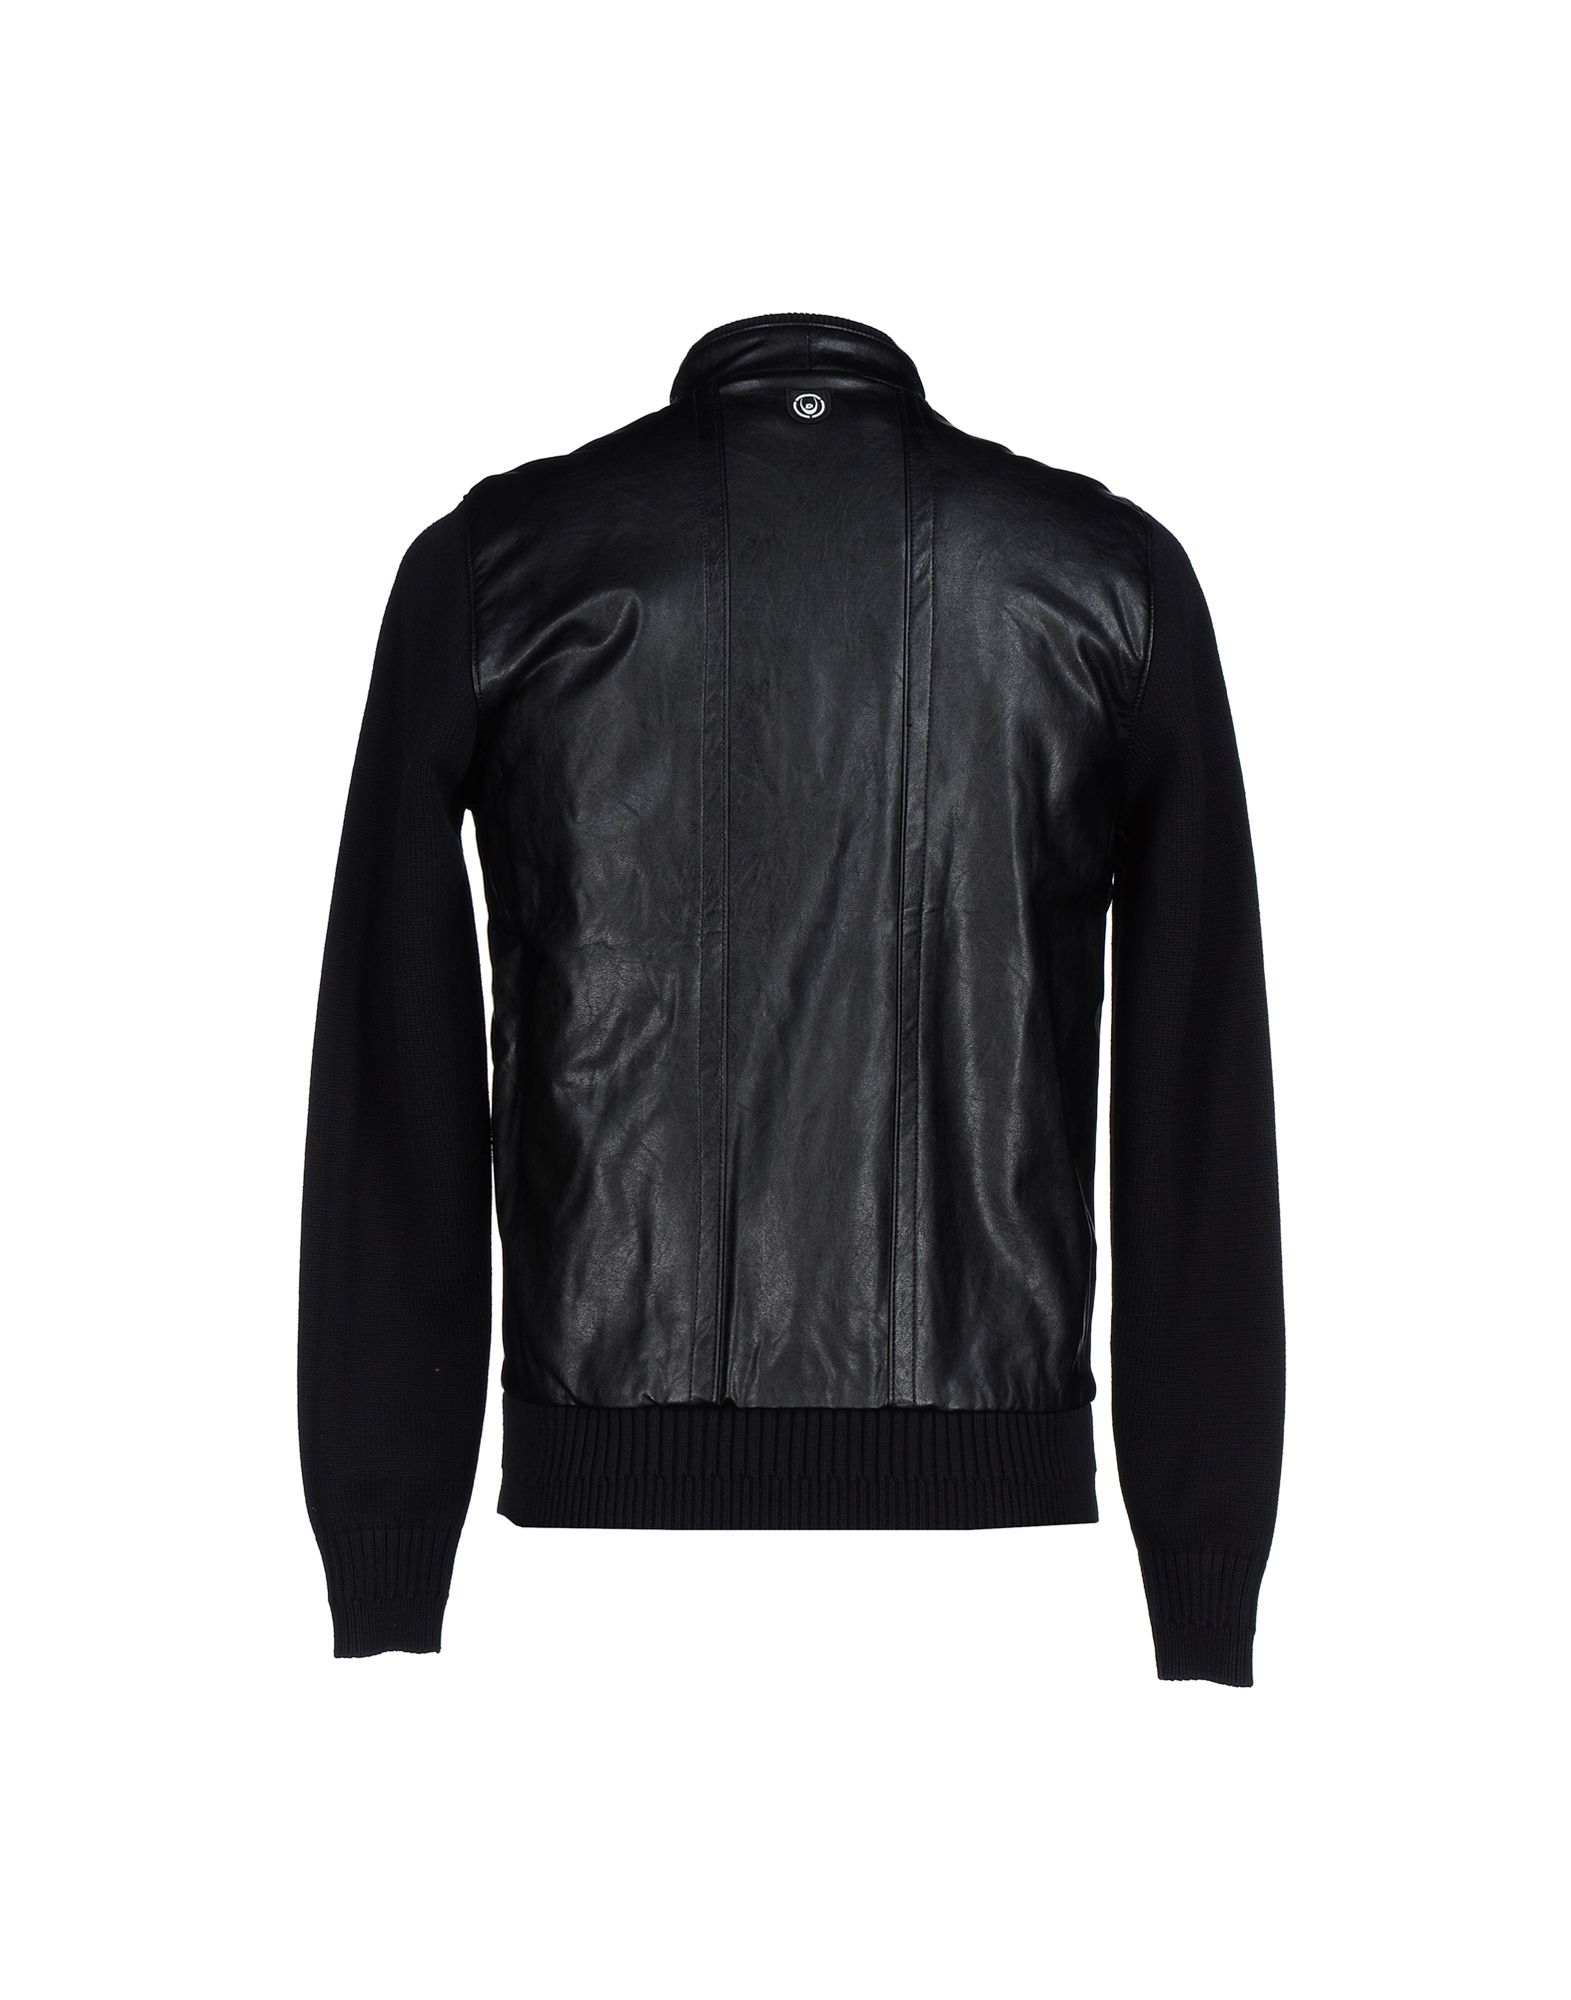 Book Cover Black Jackets : Duck and cover jacket in black for men lyst